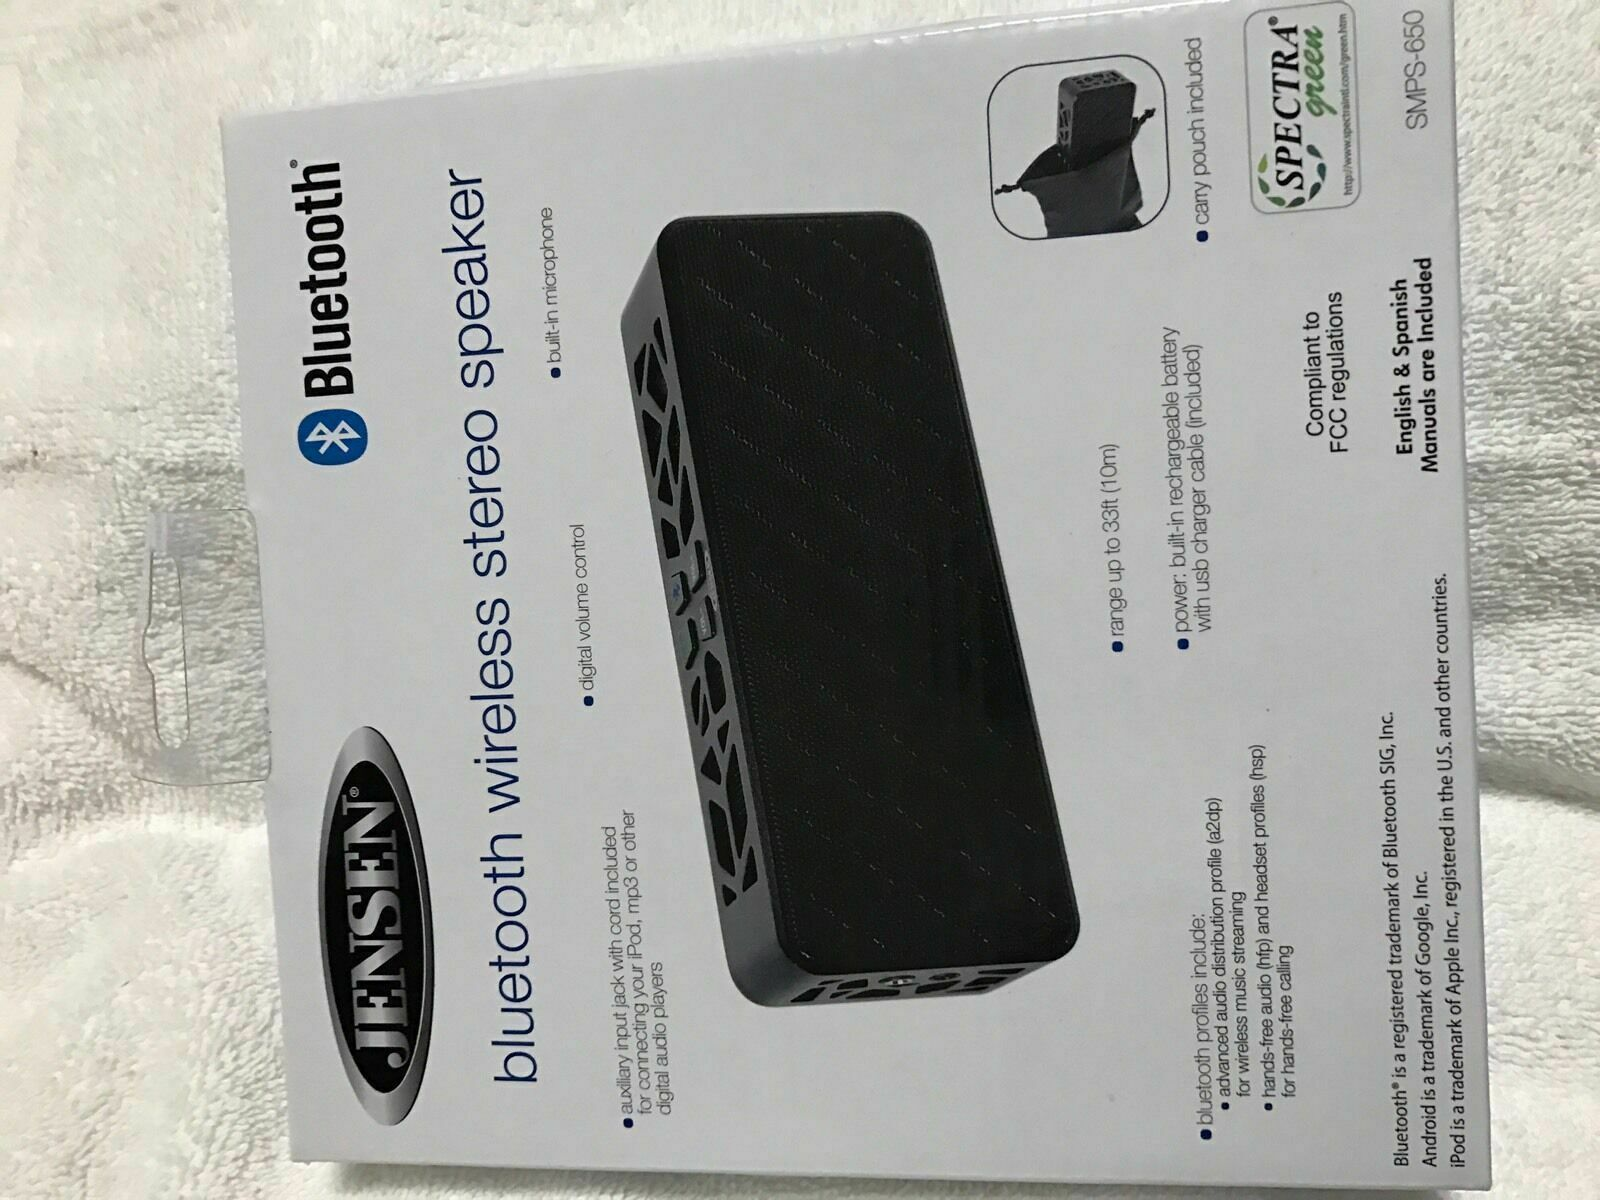 Jensen Smps-650 Portable Bluetooth Wireless Rechargeable Speaker Brand New